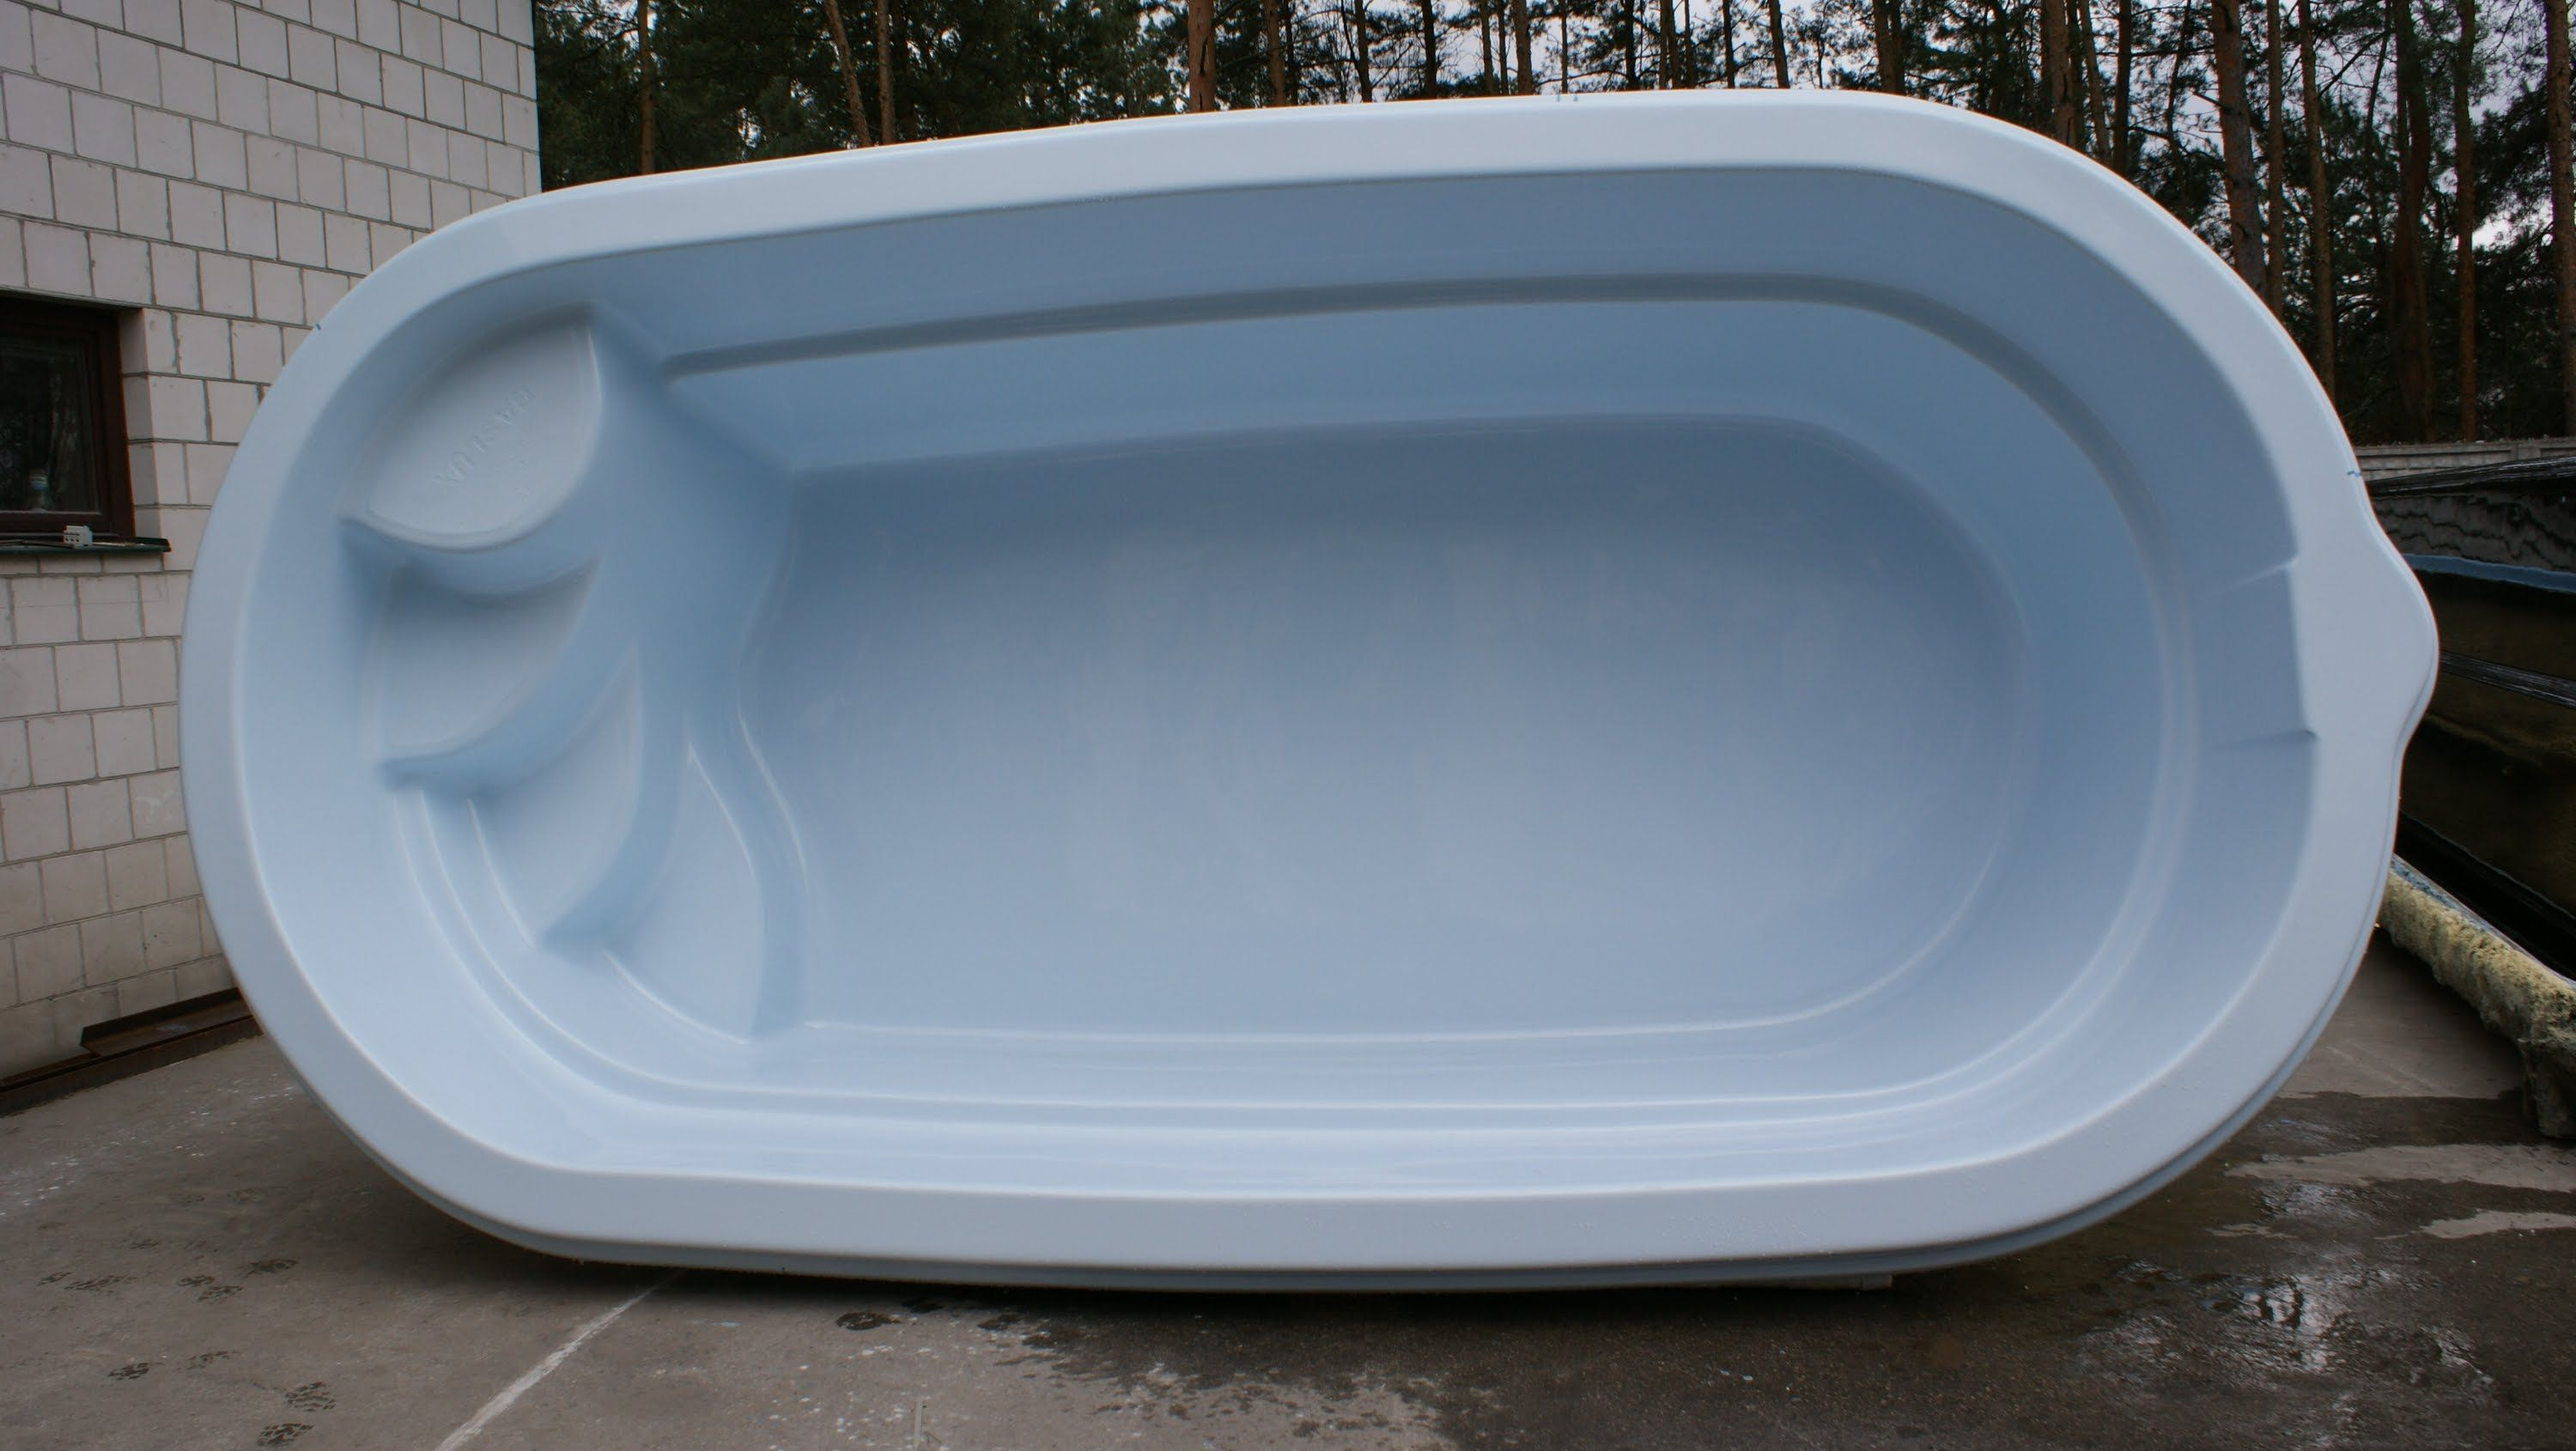 Piscine coque pas cher https for Piscine coque 3x3